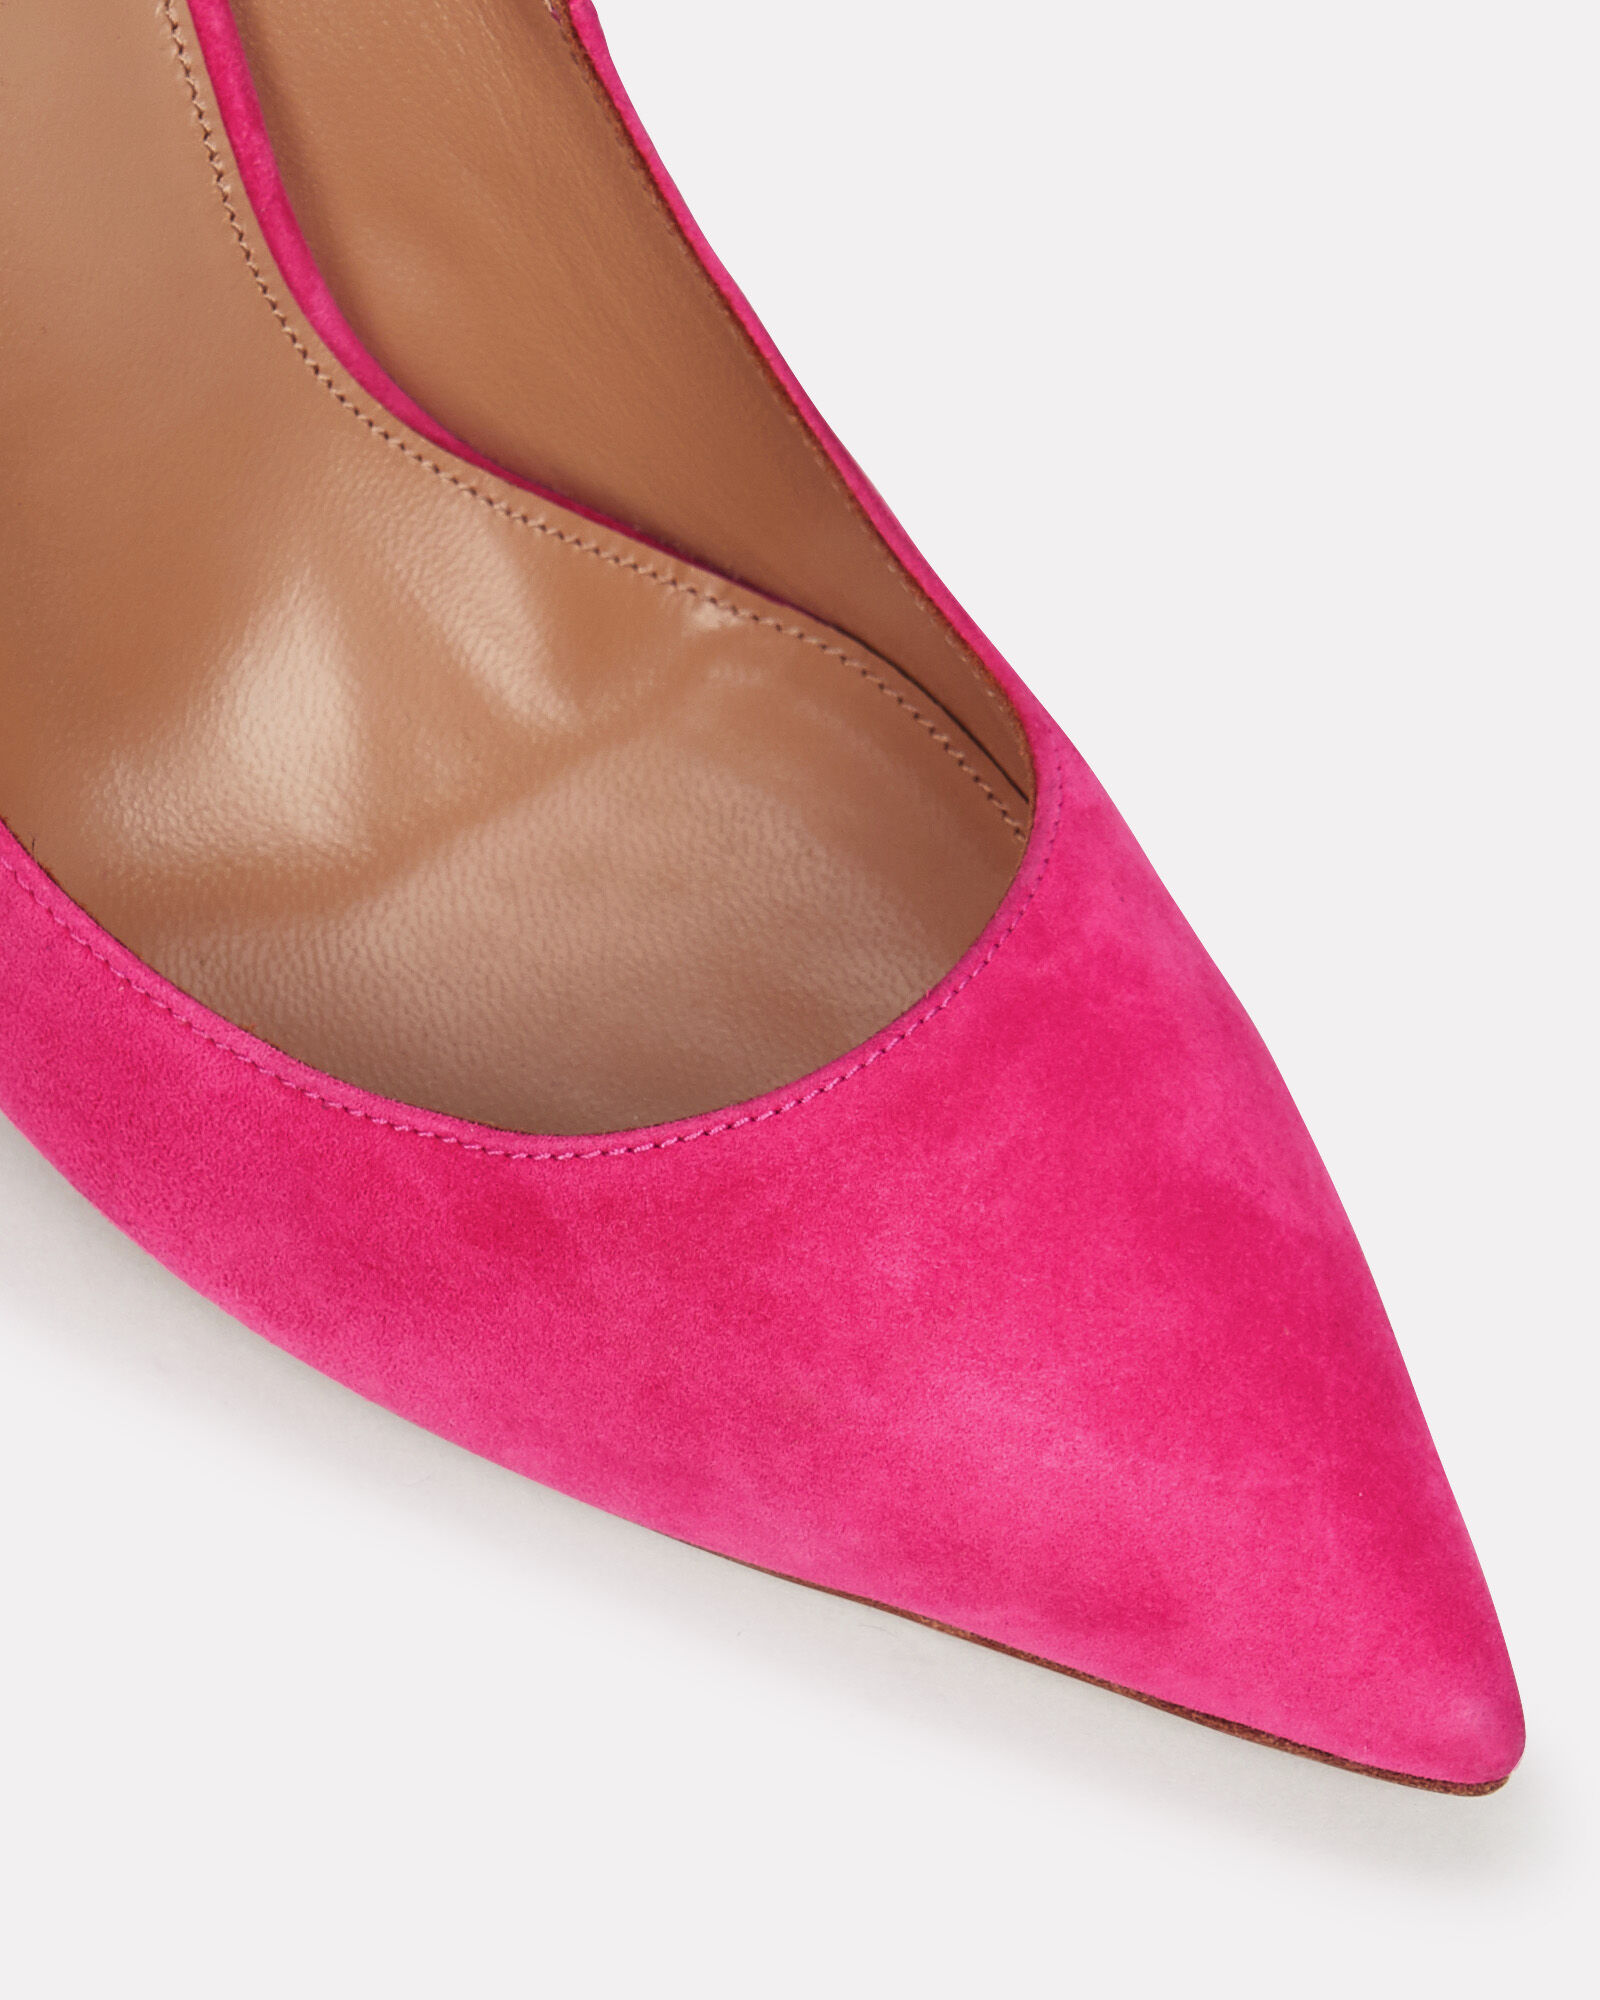 Purist 95 Suede Pumps, PINK, hi-res